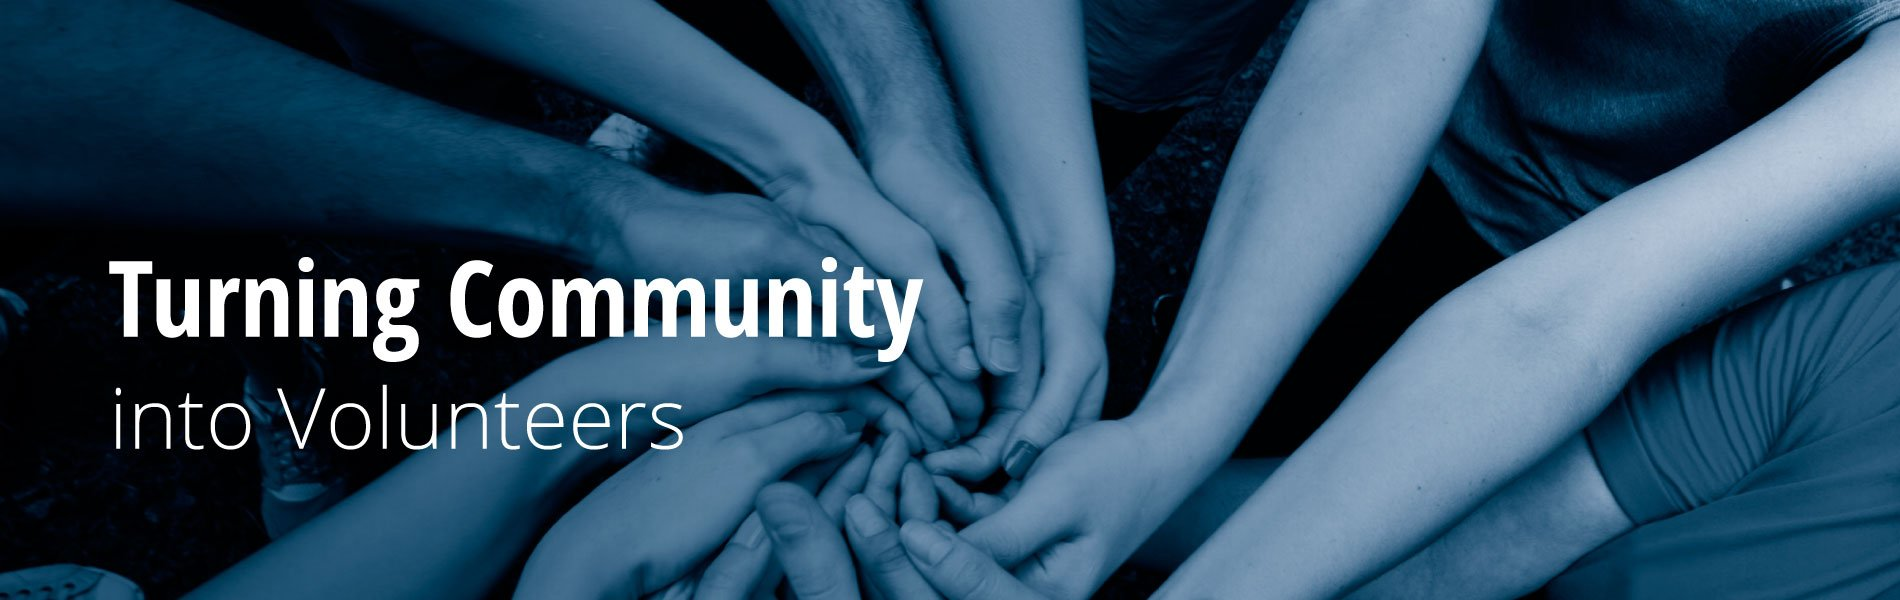 CommunityVolunteers-1900x600.jpg